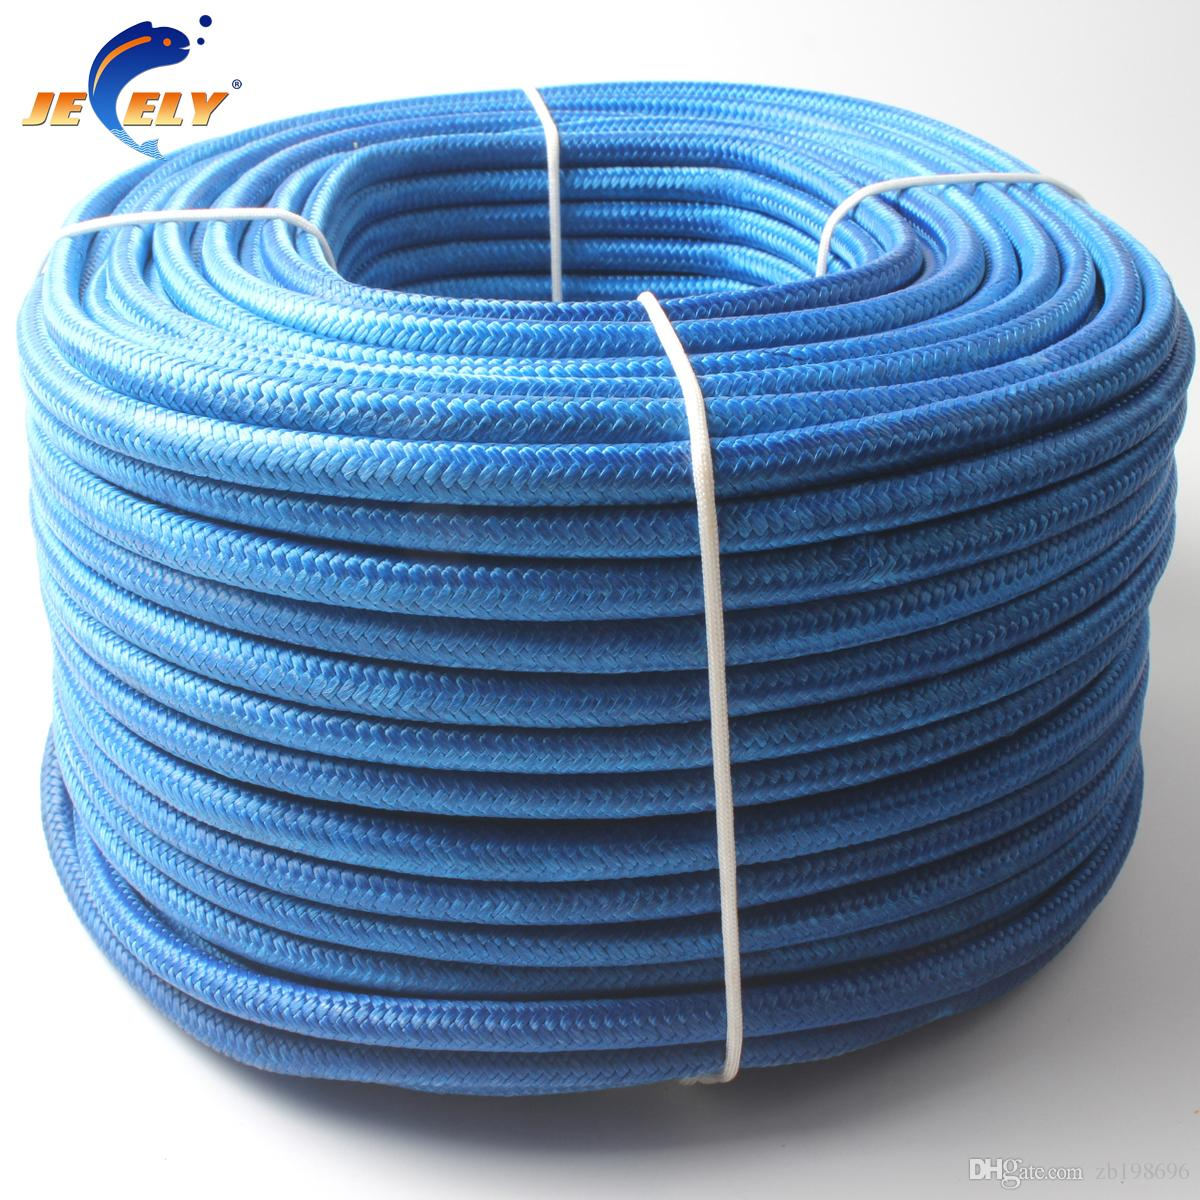 500M 1.4mm Spectra Towing Winch Rope Polyester Sleeve 16/24/32 ...